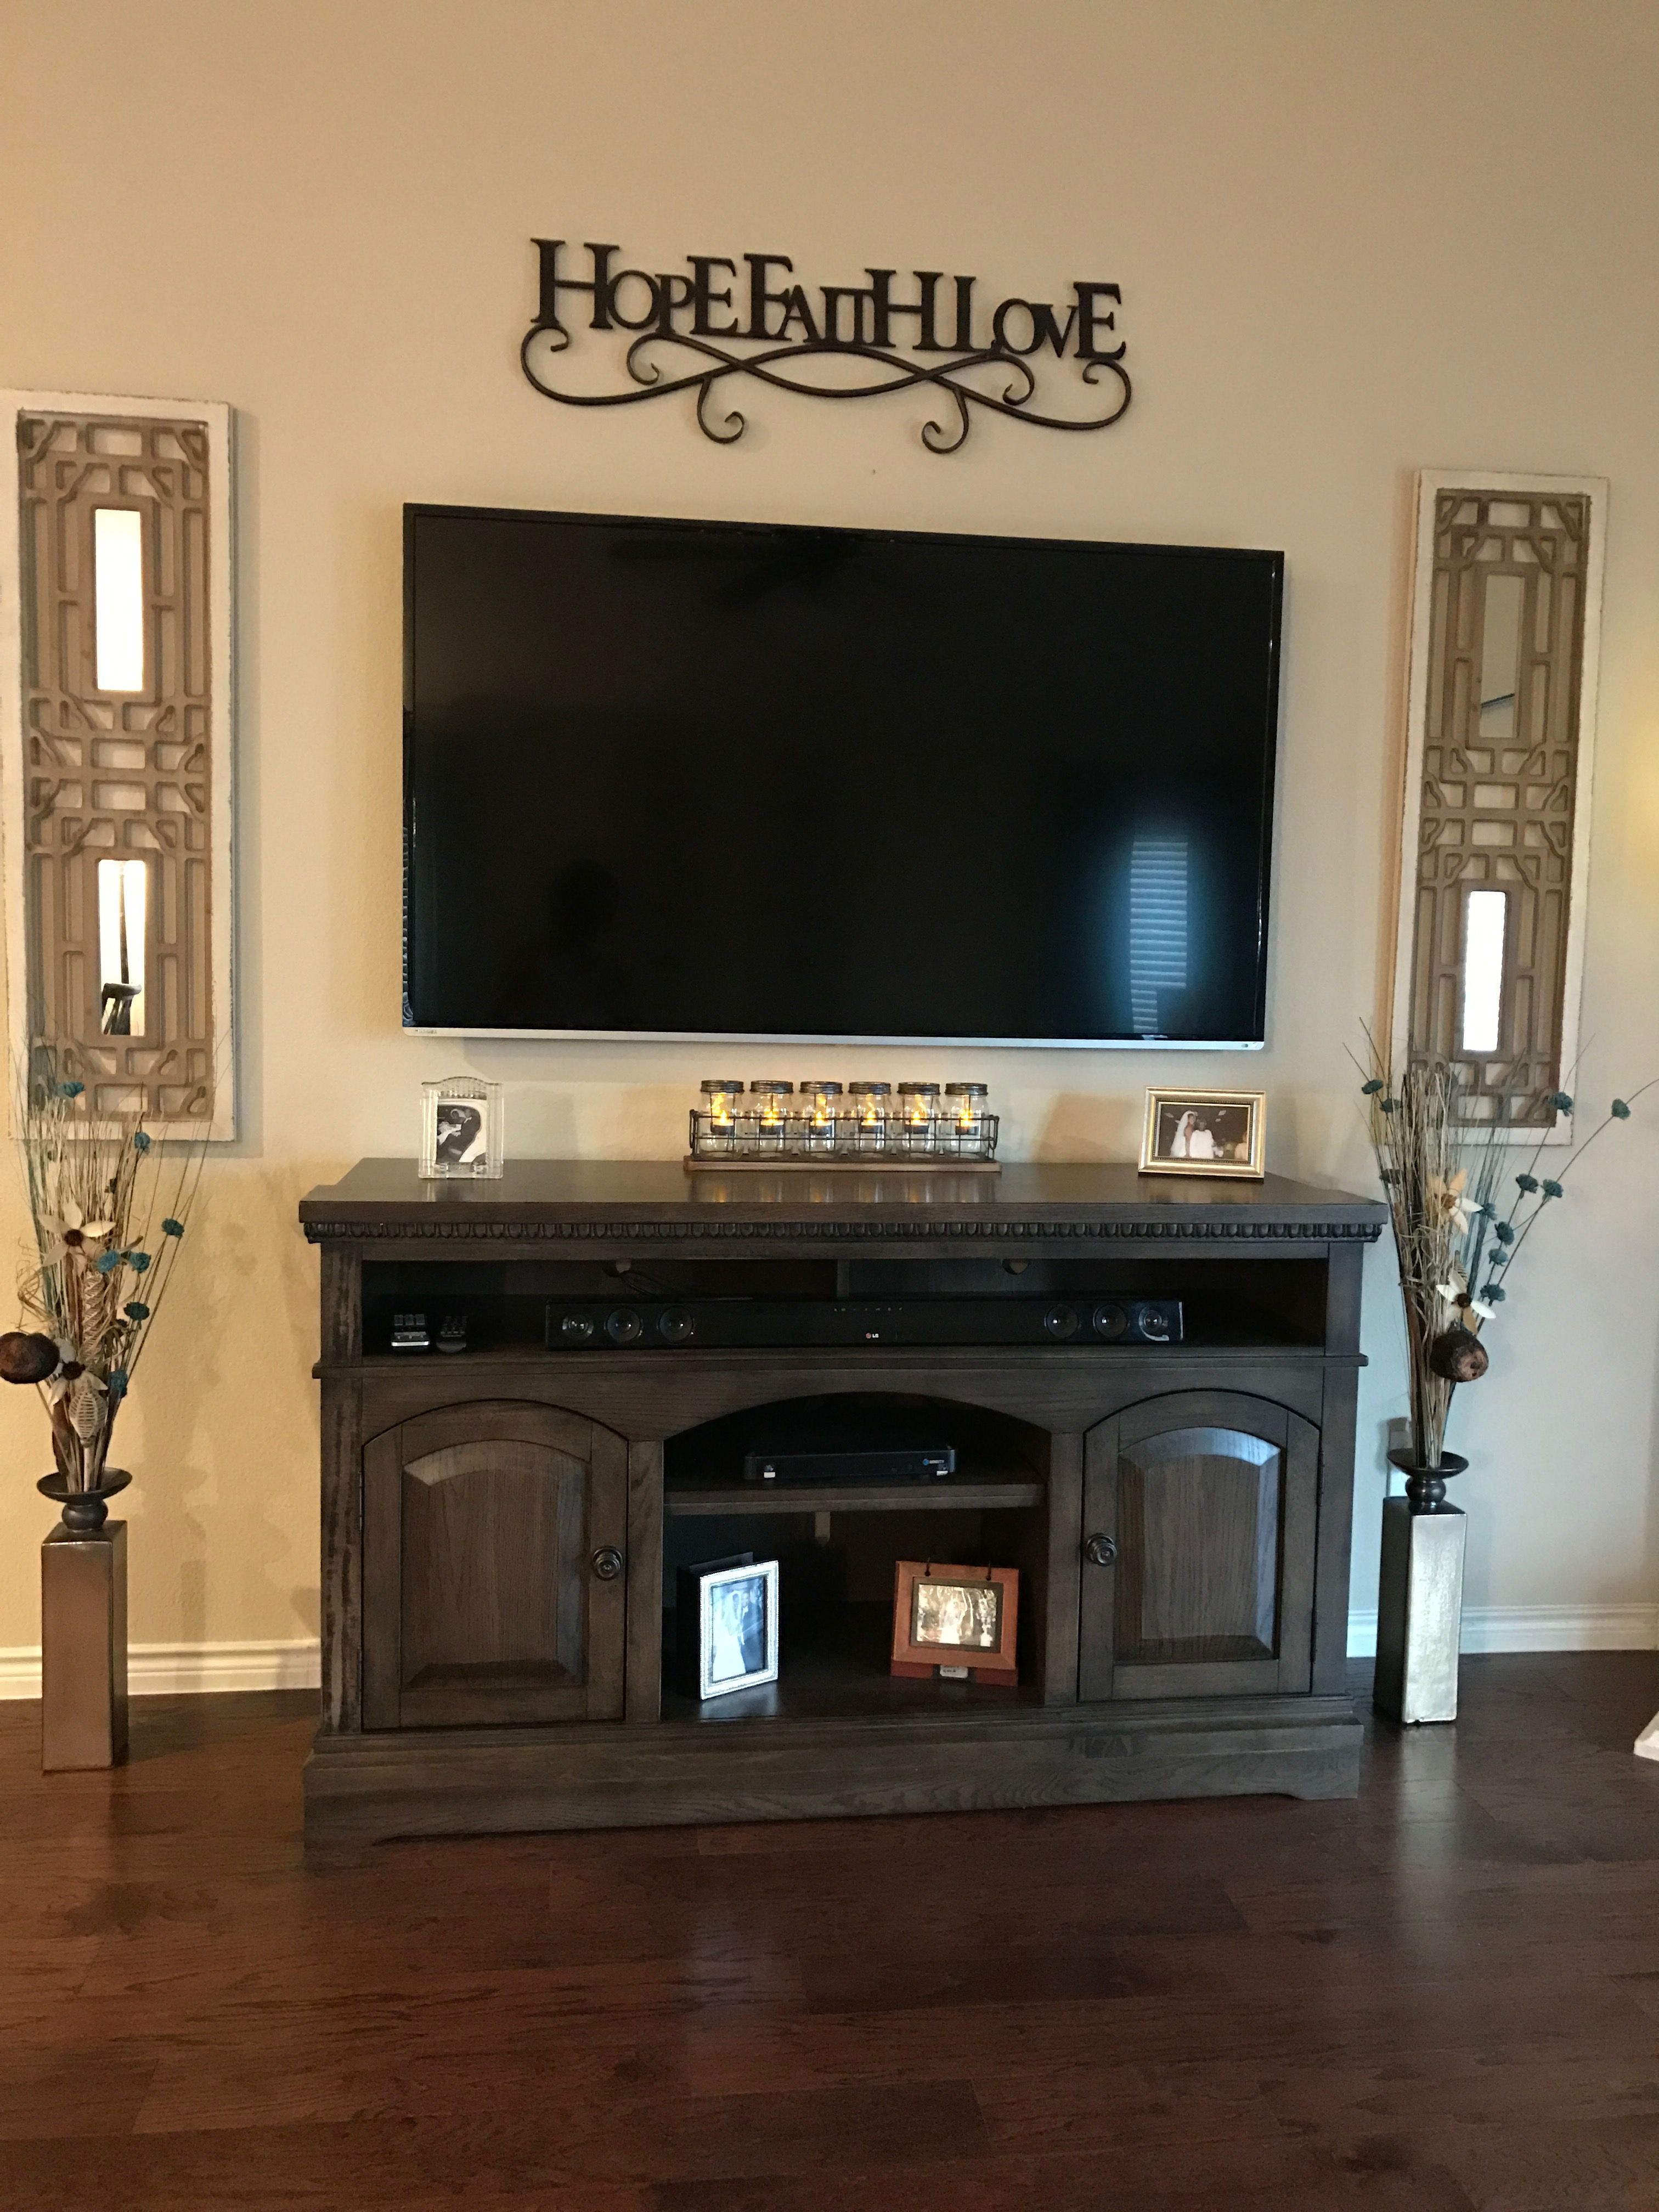 All Decor From Kirkland S Farmhouse Decor Living Room Tv Decor